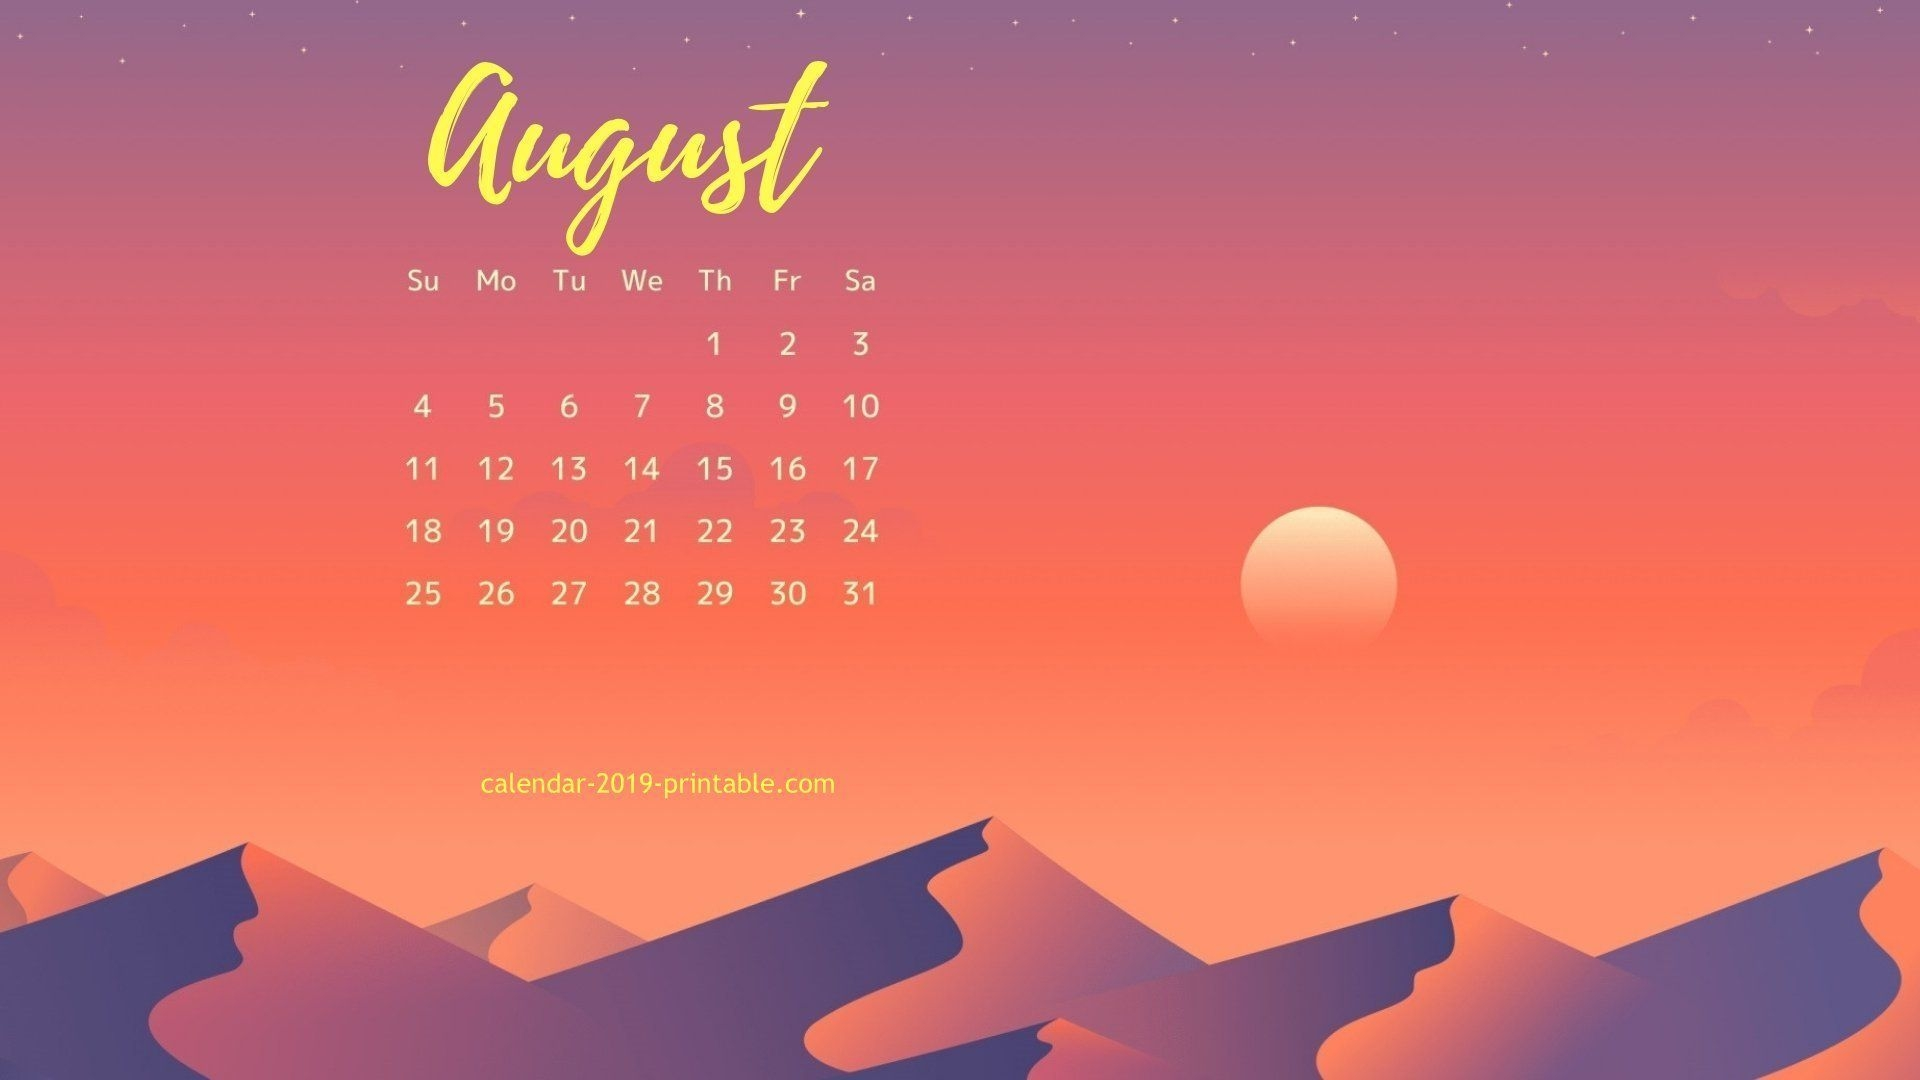 August 2019 Calendar Images For Desktop Background Calendar 1920x1080